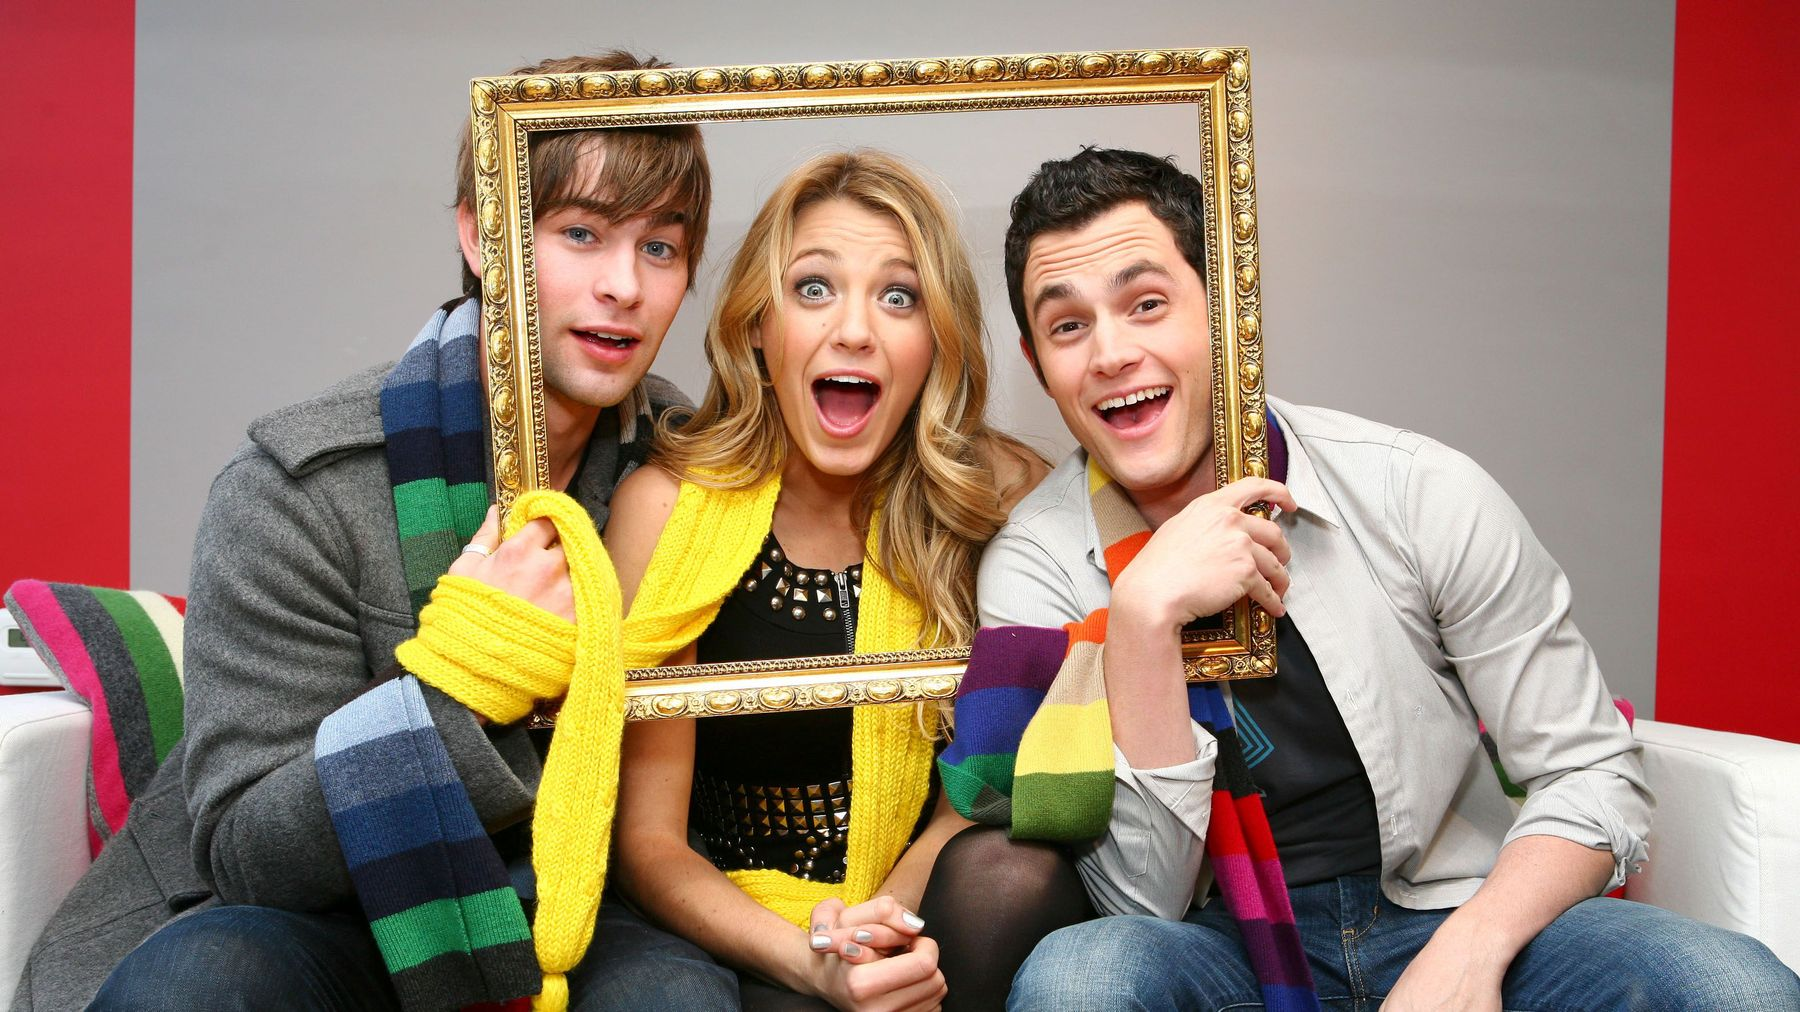 1ca20bb76d6 Gossip Girl Is Getting A Reboot So Here's 45 Things You Didn't Know ...